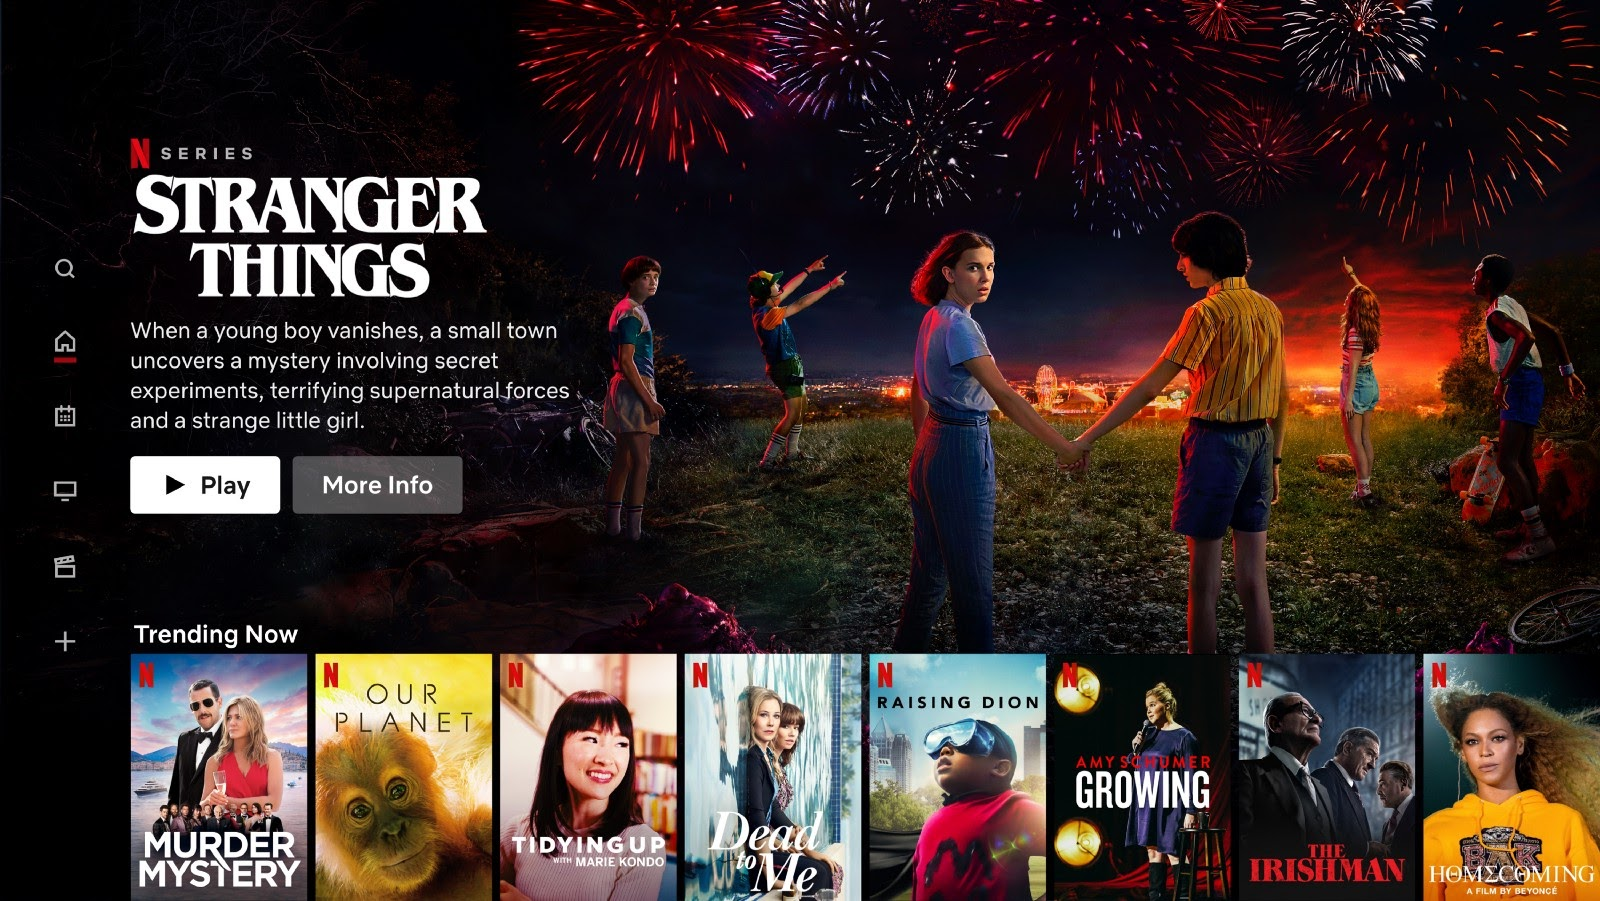 UX and UI of the Netflix homepage